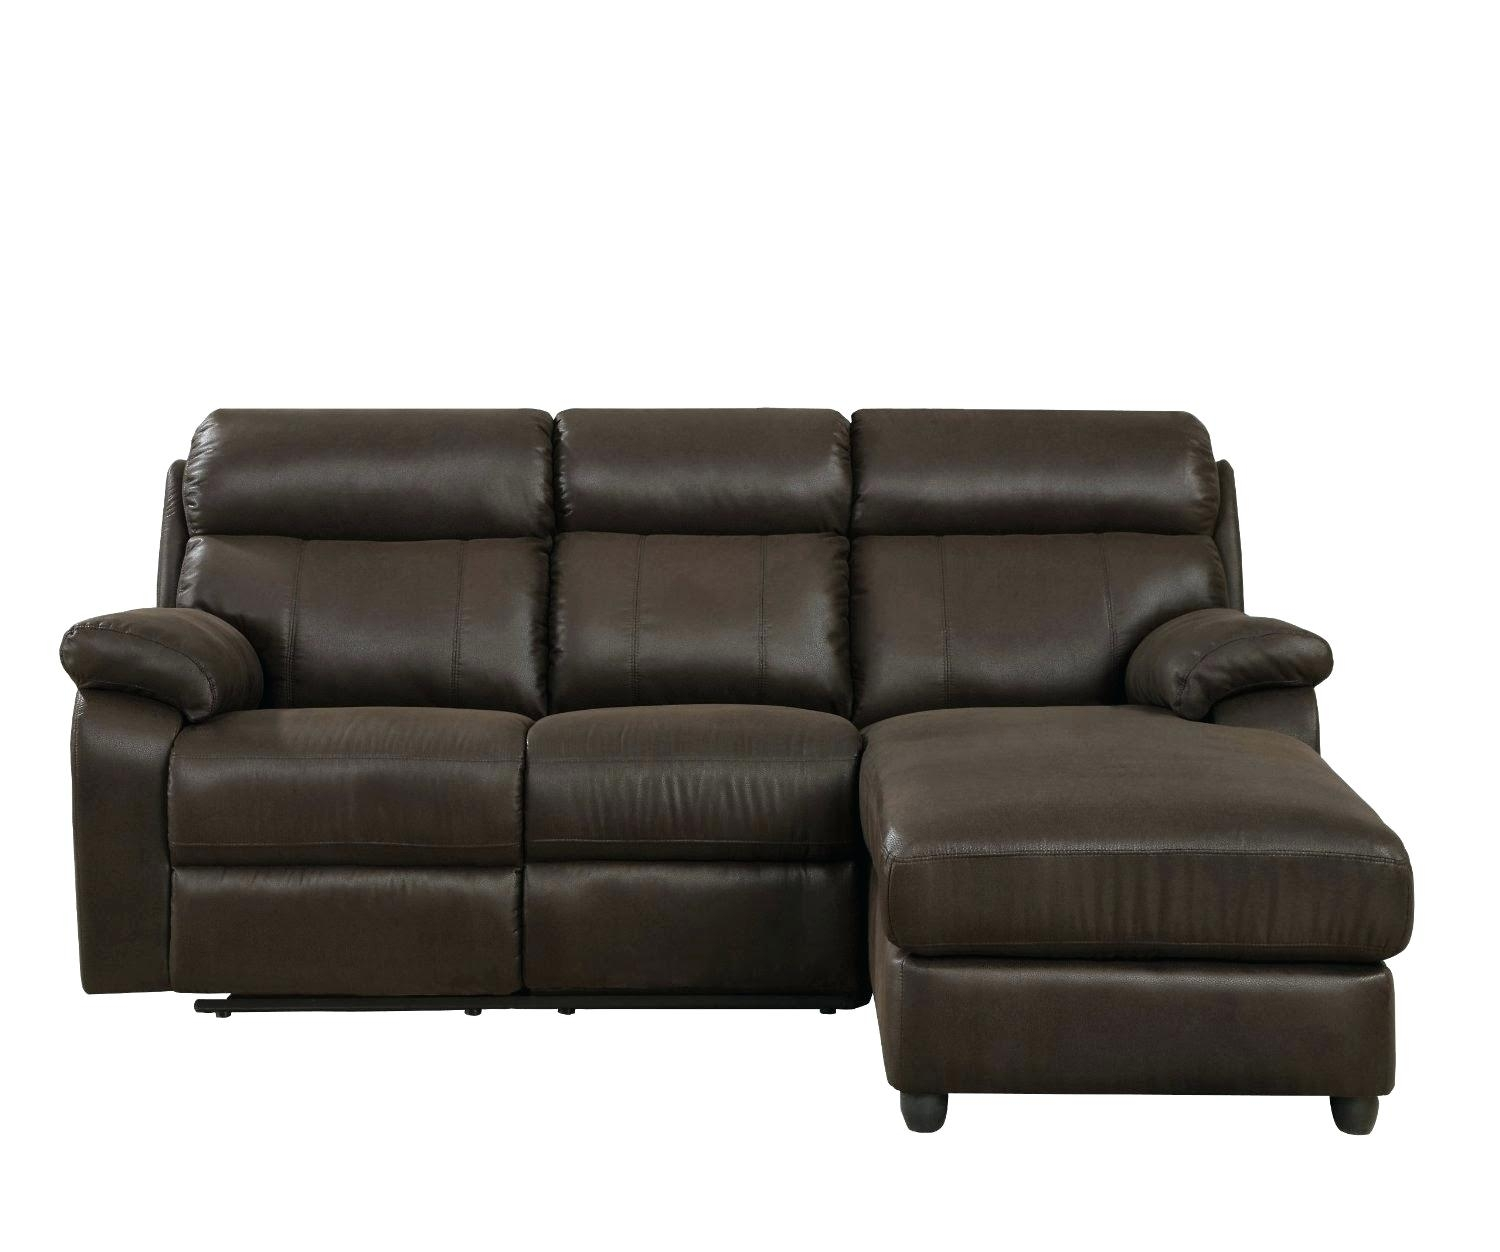 Leather Sectionals For Sale Couch Vancouver Bc Red Winnipeg Within Sectional Sofas At Bc Canada (View 3 of 15)